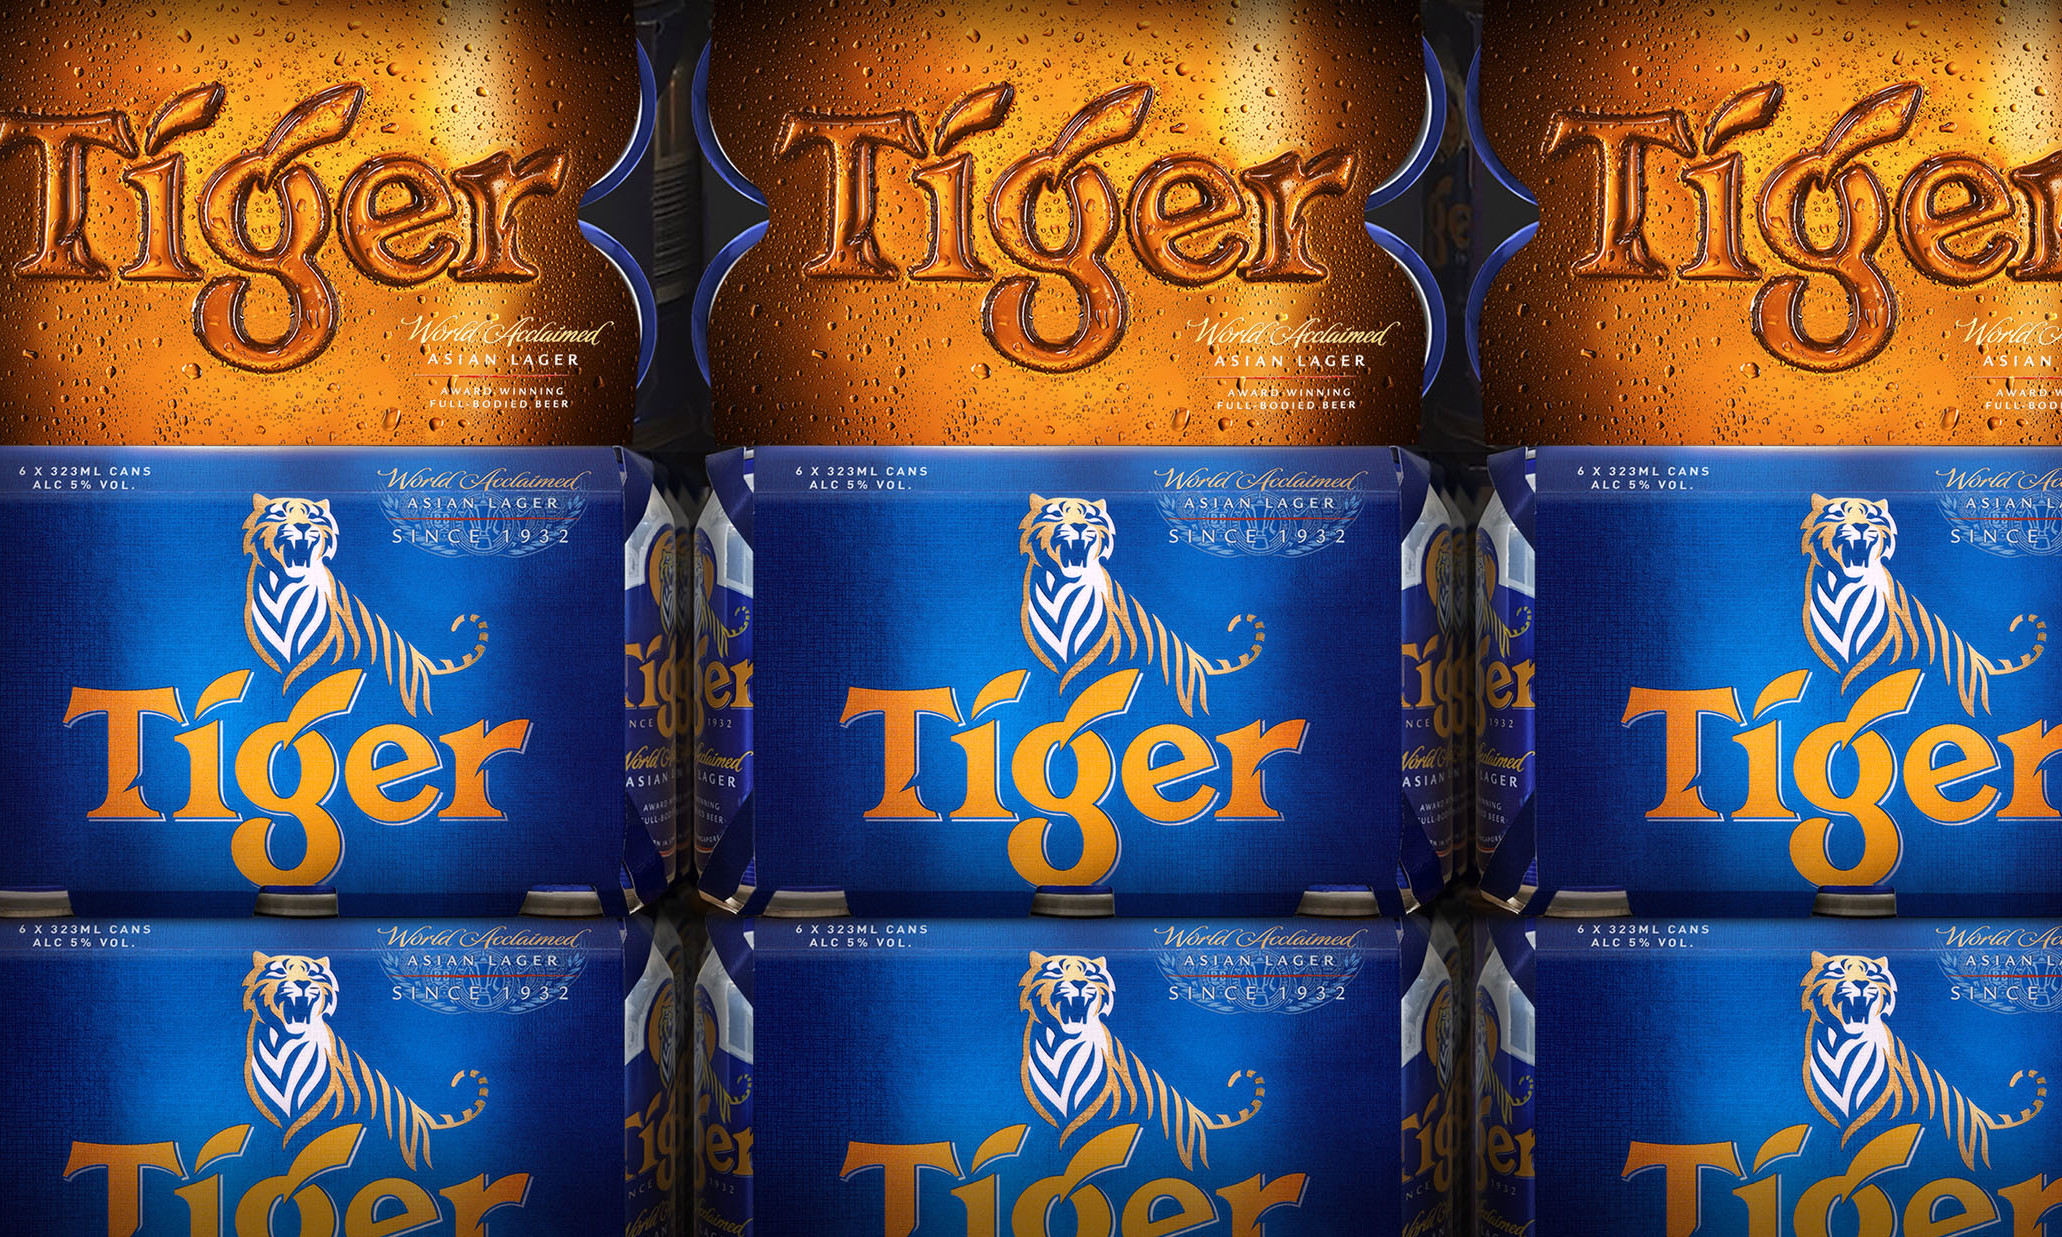 marketing tiger beer Grumpy cat's owner sues coffee firm, tiger beer recycling campaign fail: international round-up.